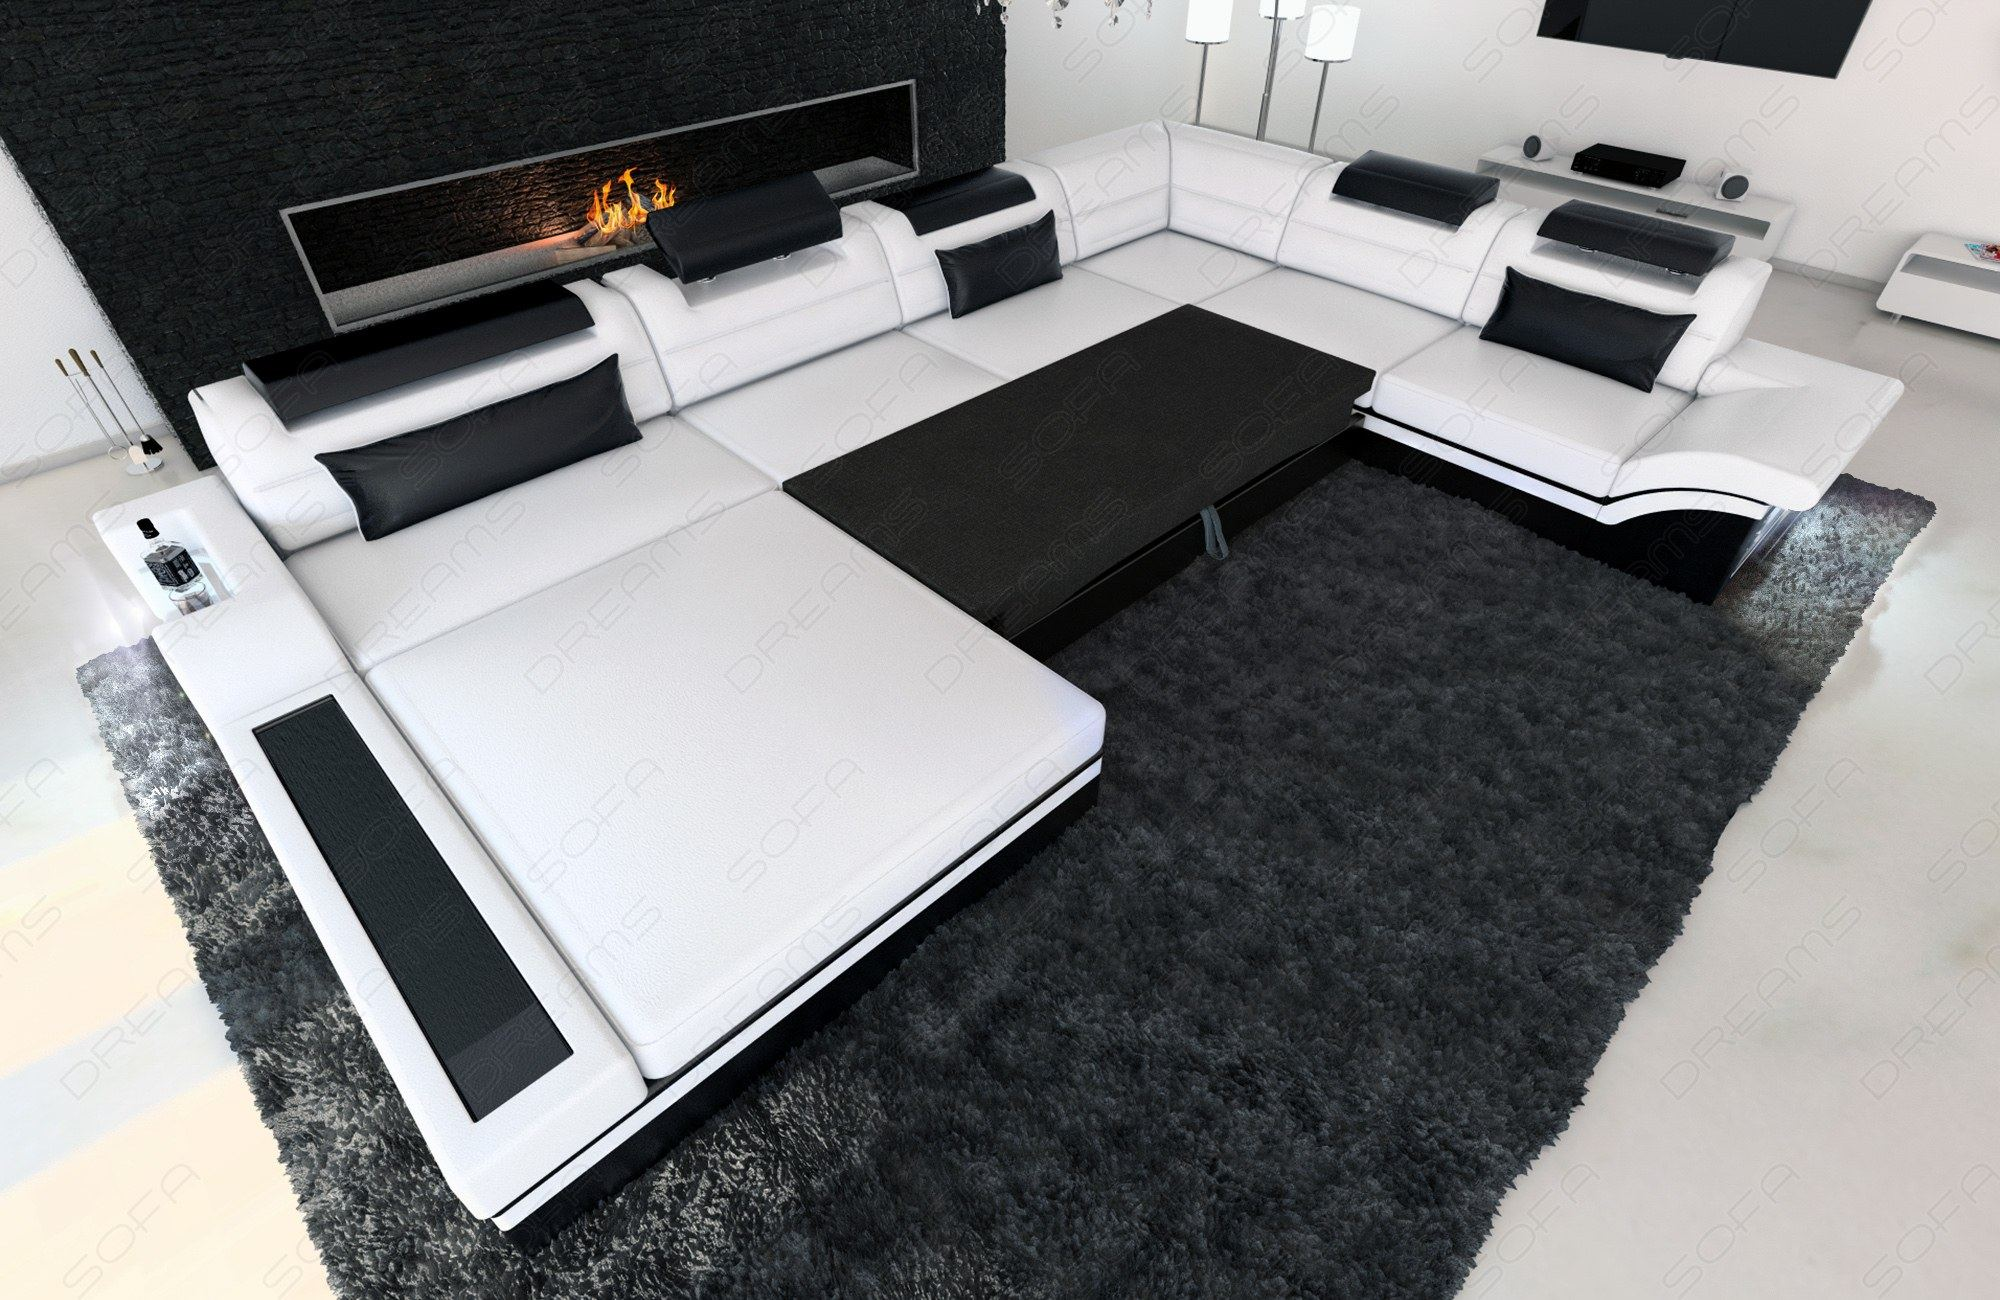 luxury design sectional sofa mezzo xxl with led lights. Black Bedroom Furniture Sets. Home Design Ideas